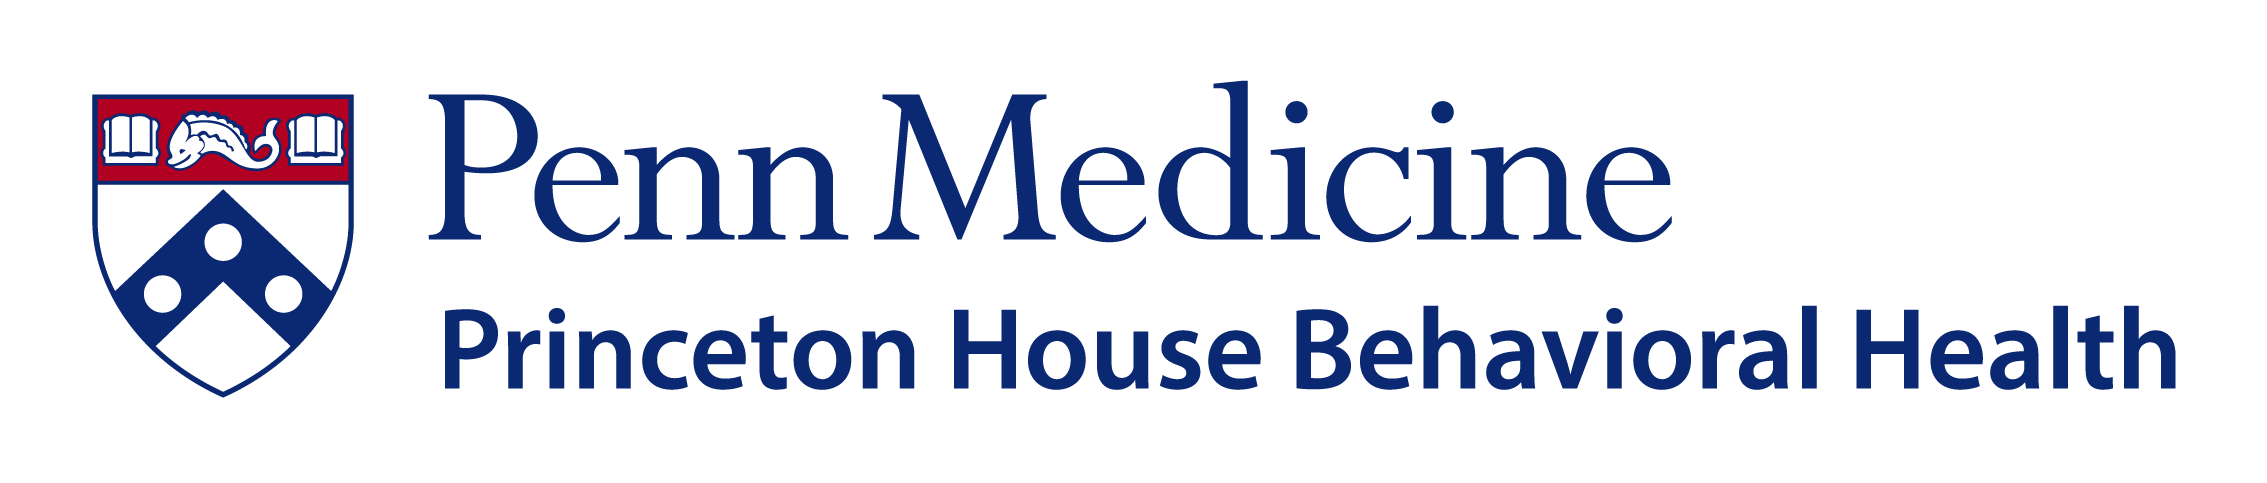 Psychiatric Advanced Practice Nurse - Eating Disorders - Penn Medicine Princeton House Behavioral Health